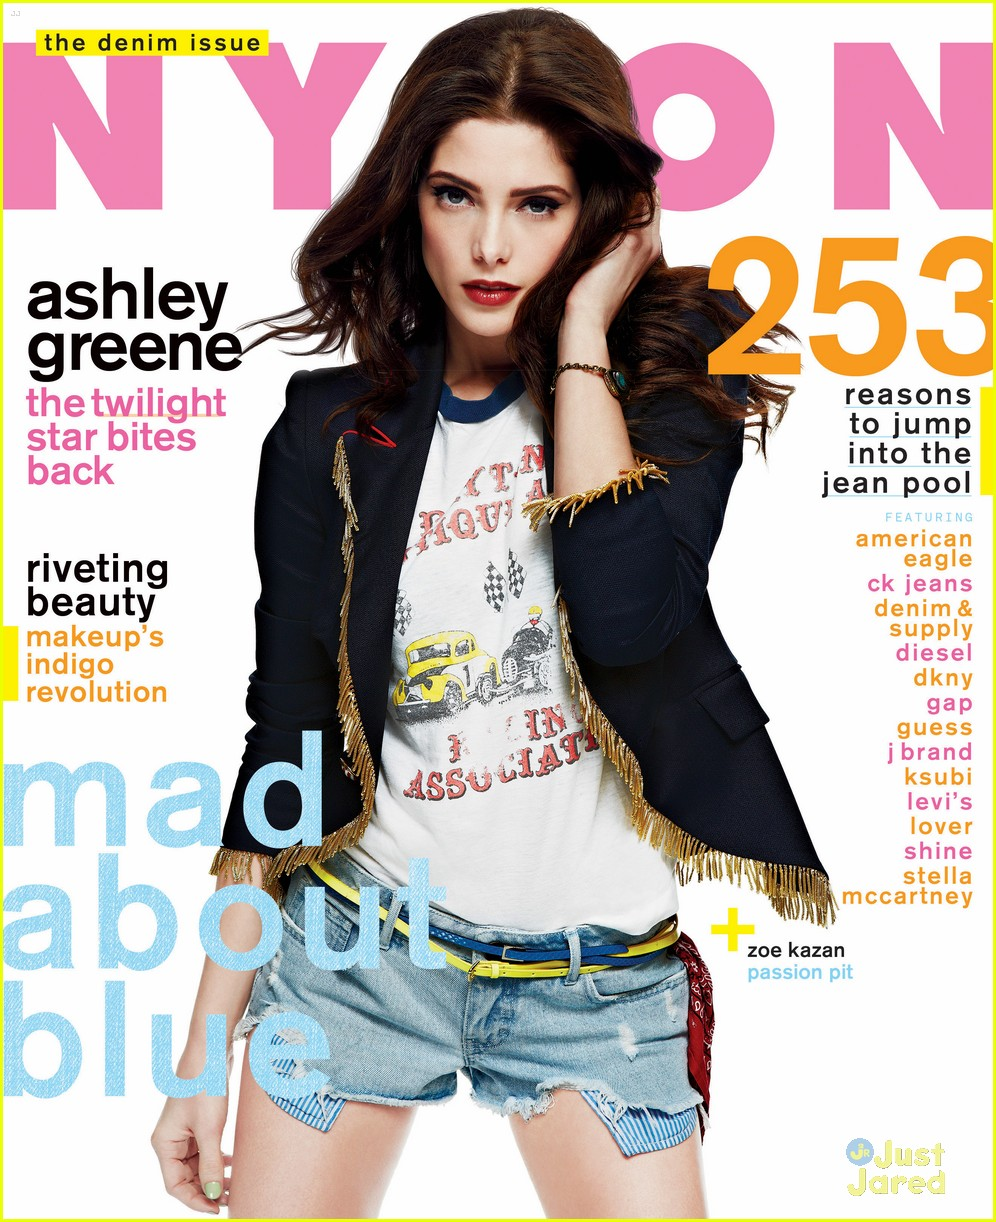 ashley greene nylon denim issue 02